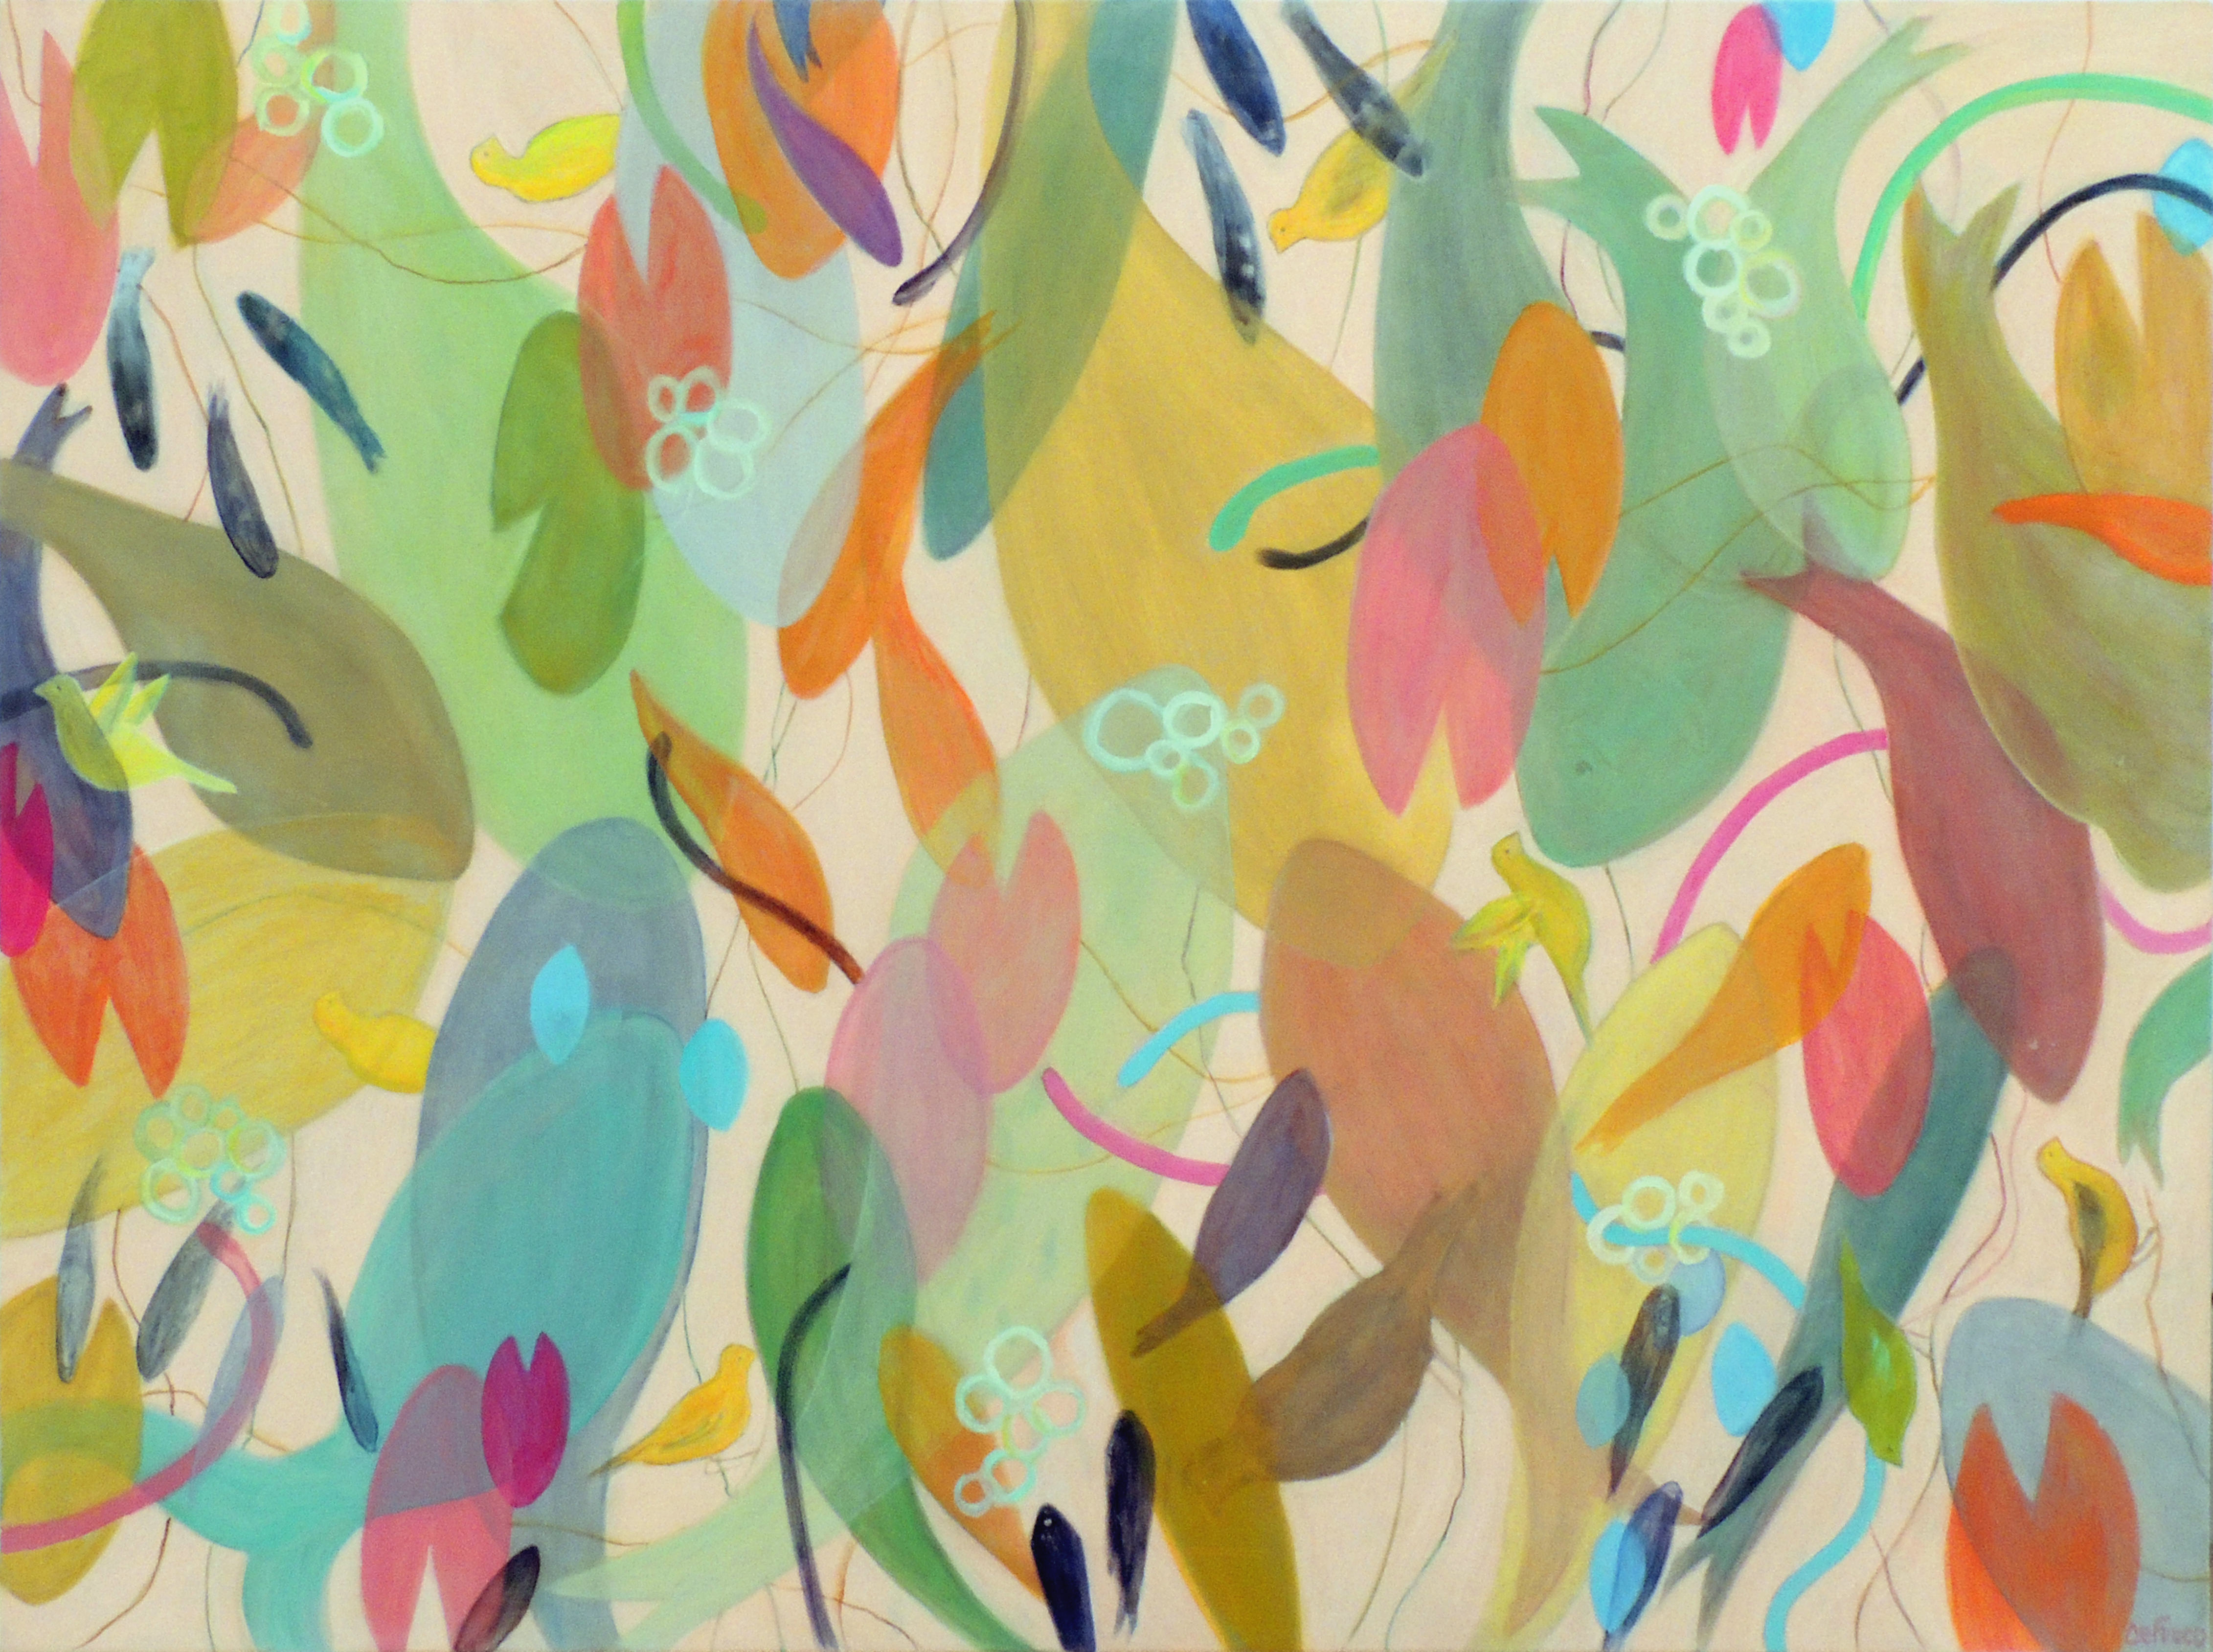 Betsy DeFusco | PINK POND | Oil on canvas